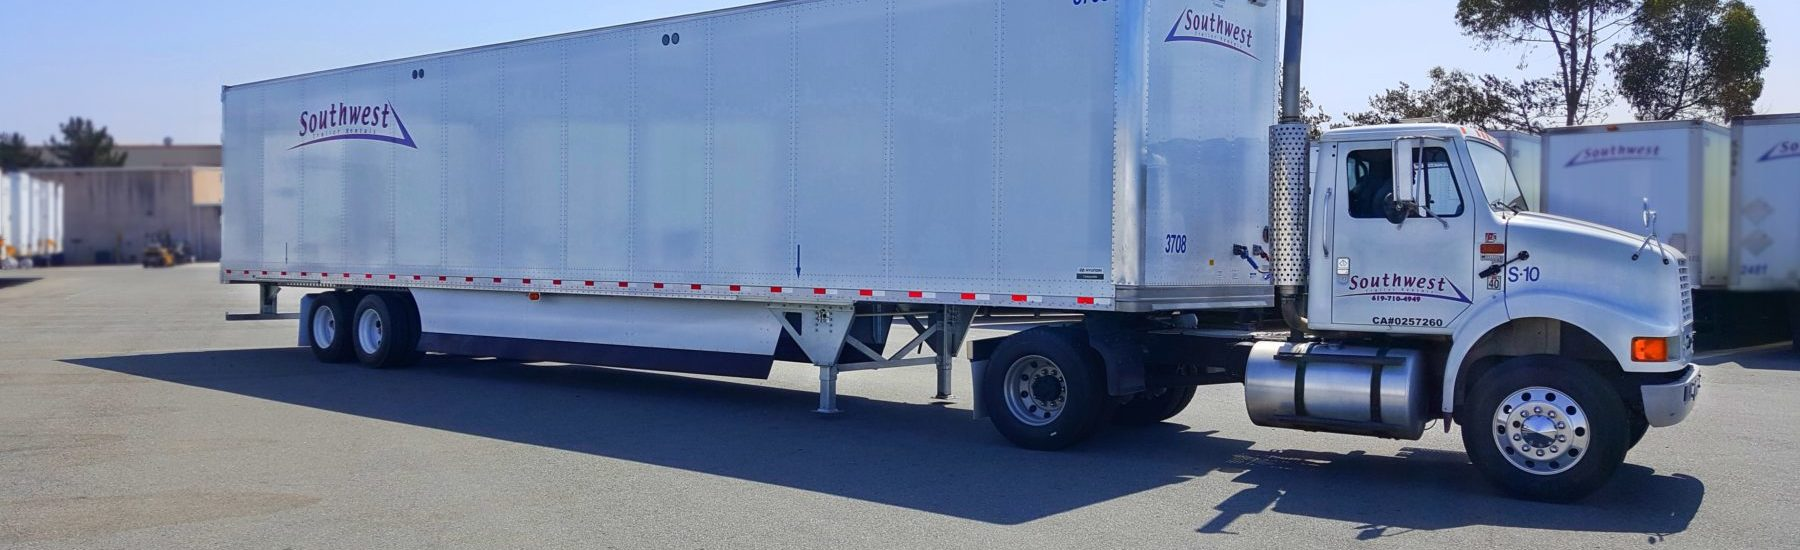 Southwest Trailer Rentals San Diego, Trailer Leasing and